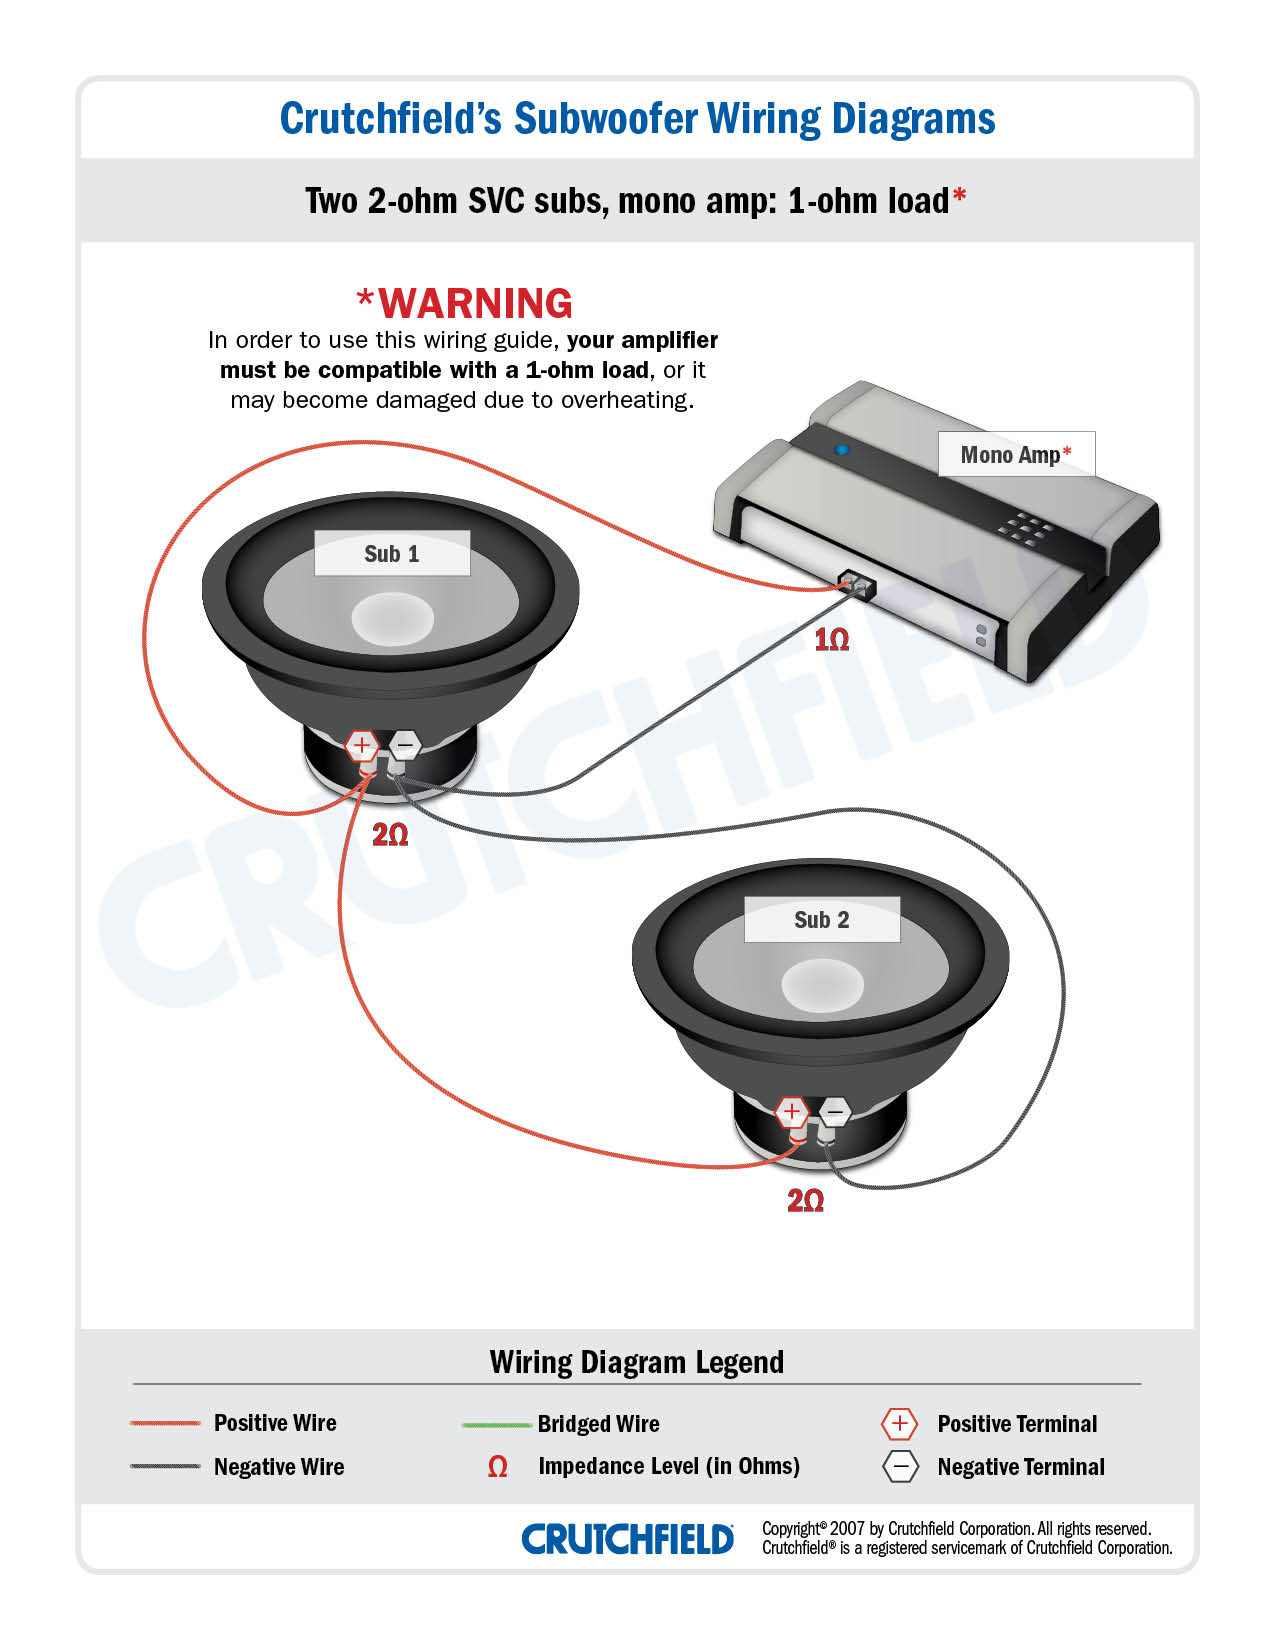 Subwoofer Wiring Diagrams How To Wire Your Subs Sound